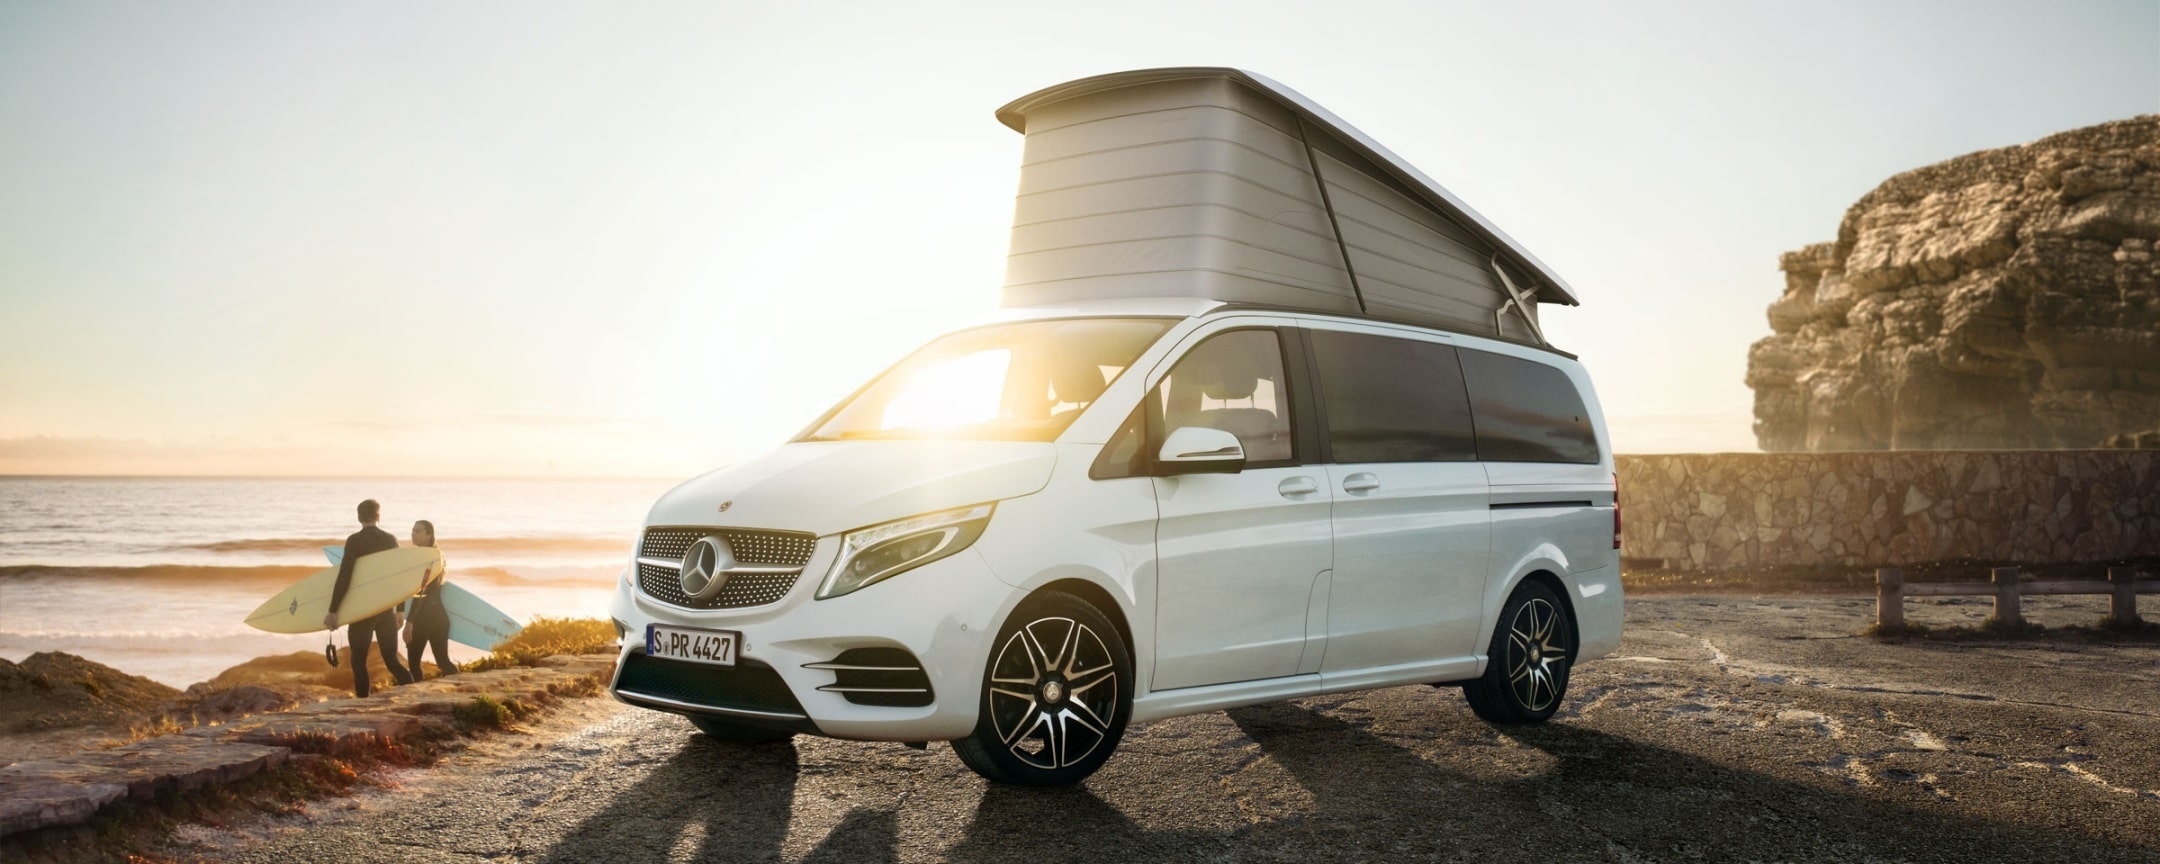 Marco Polo HORIZON